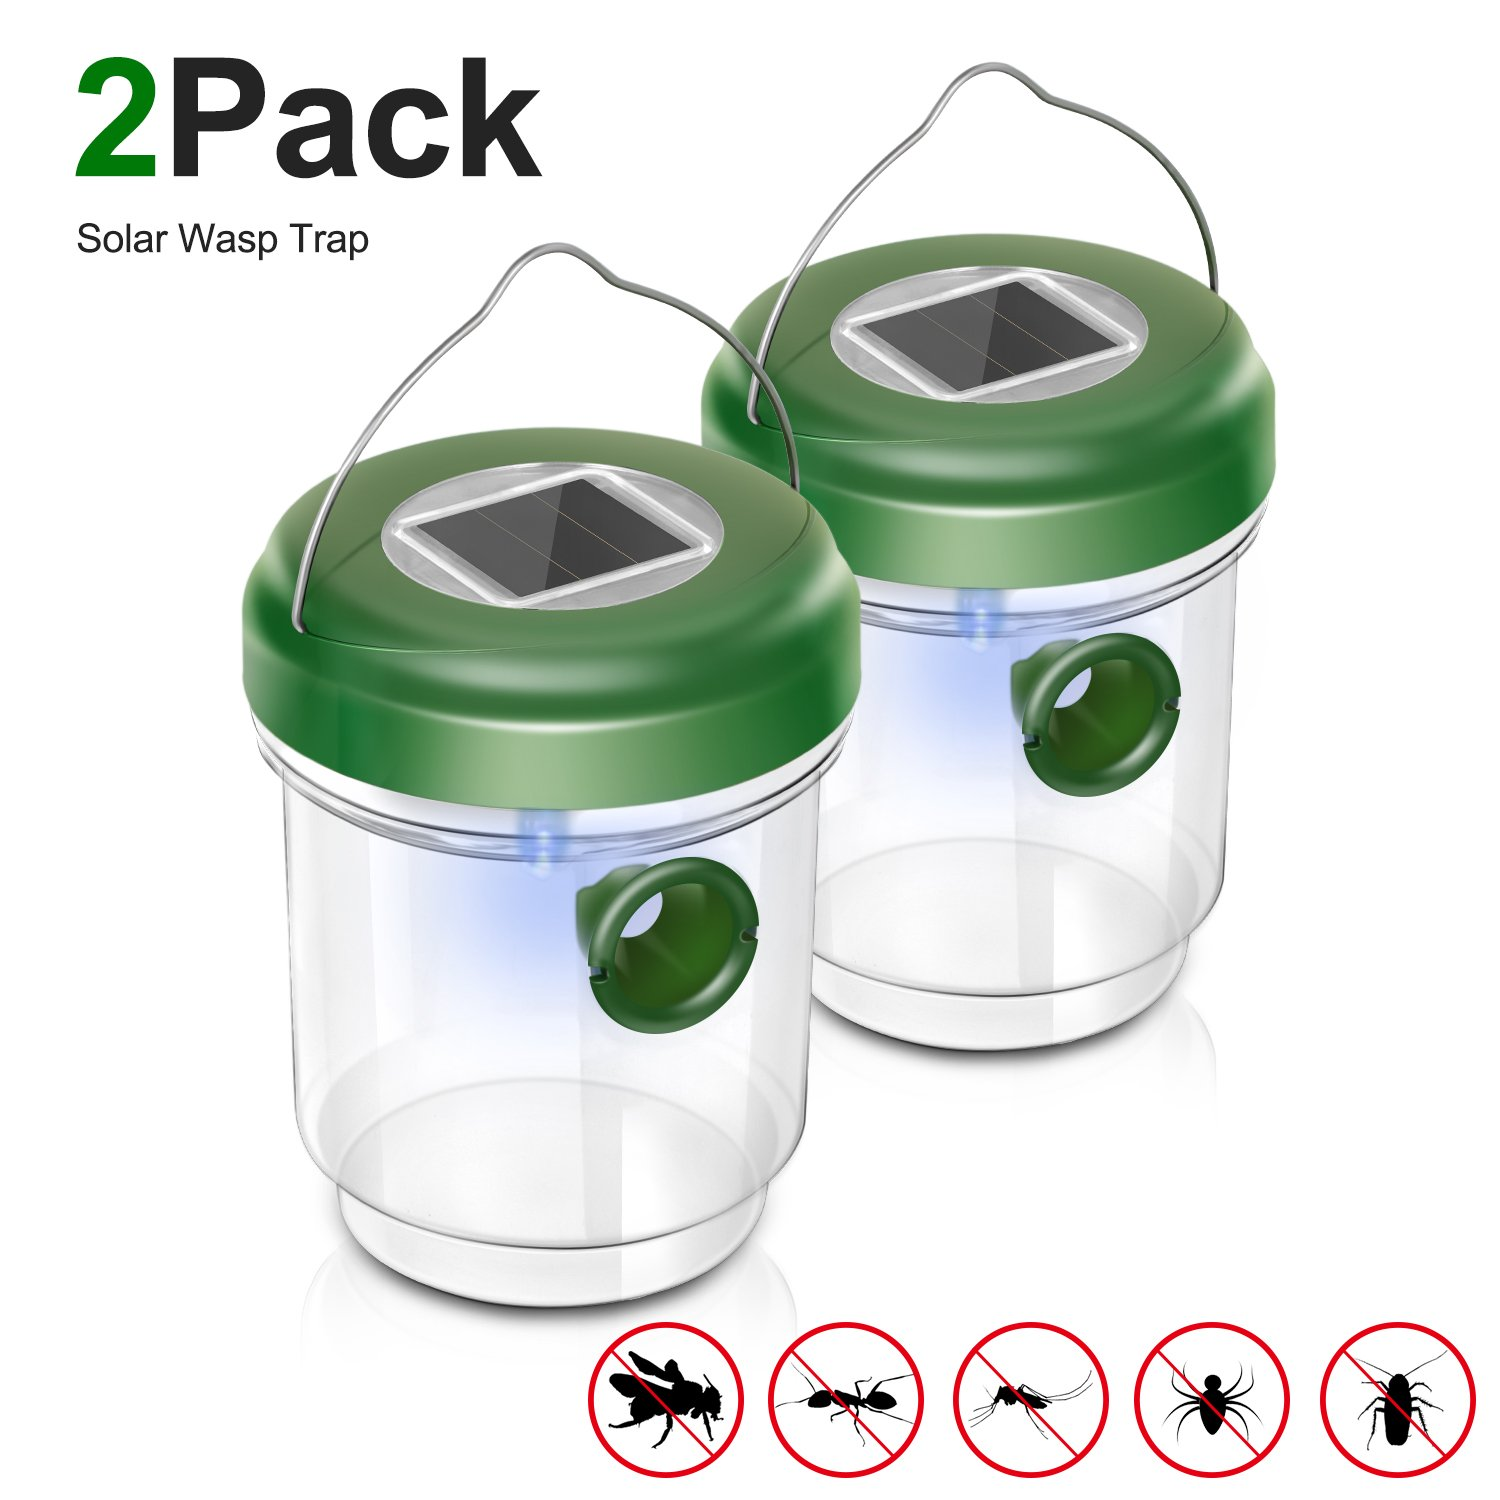 Adoric Wasp Trap Catcher, 2 Pack Perfect Outdoor Solar Powered Trap with Ultraviolet LED Light for Yellow Jackets, Bees, Wasps, Hornets, Bugs and More